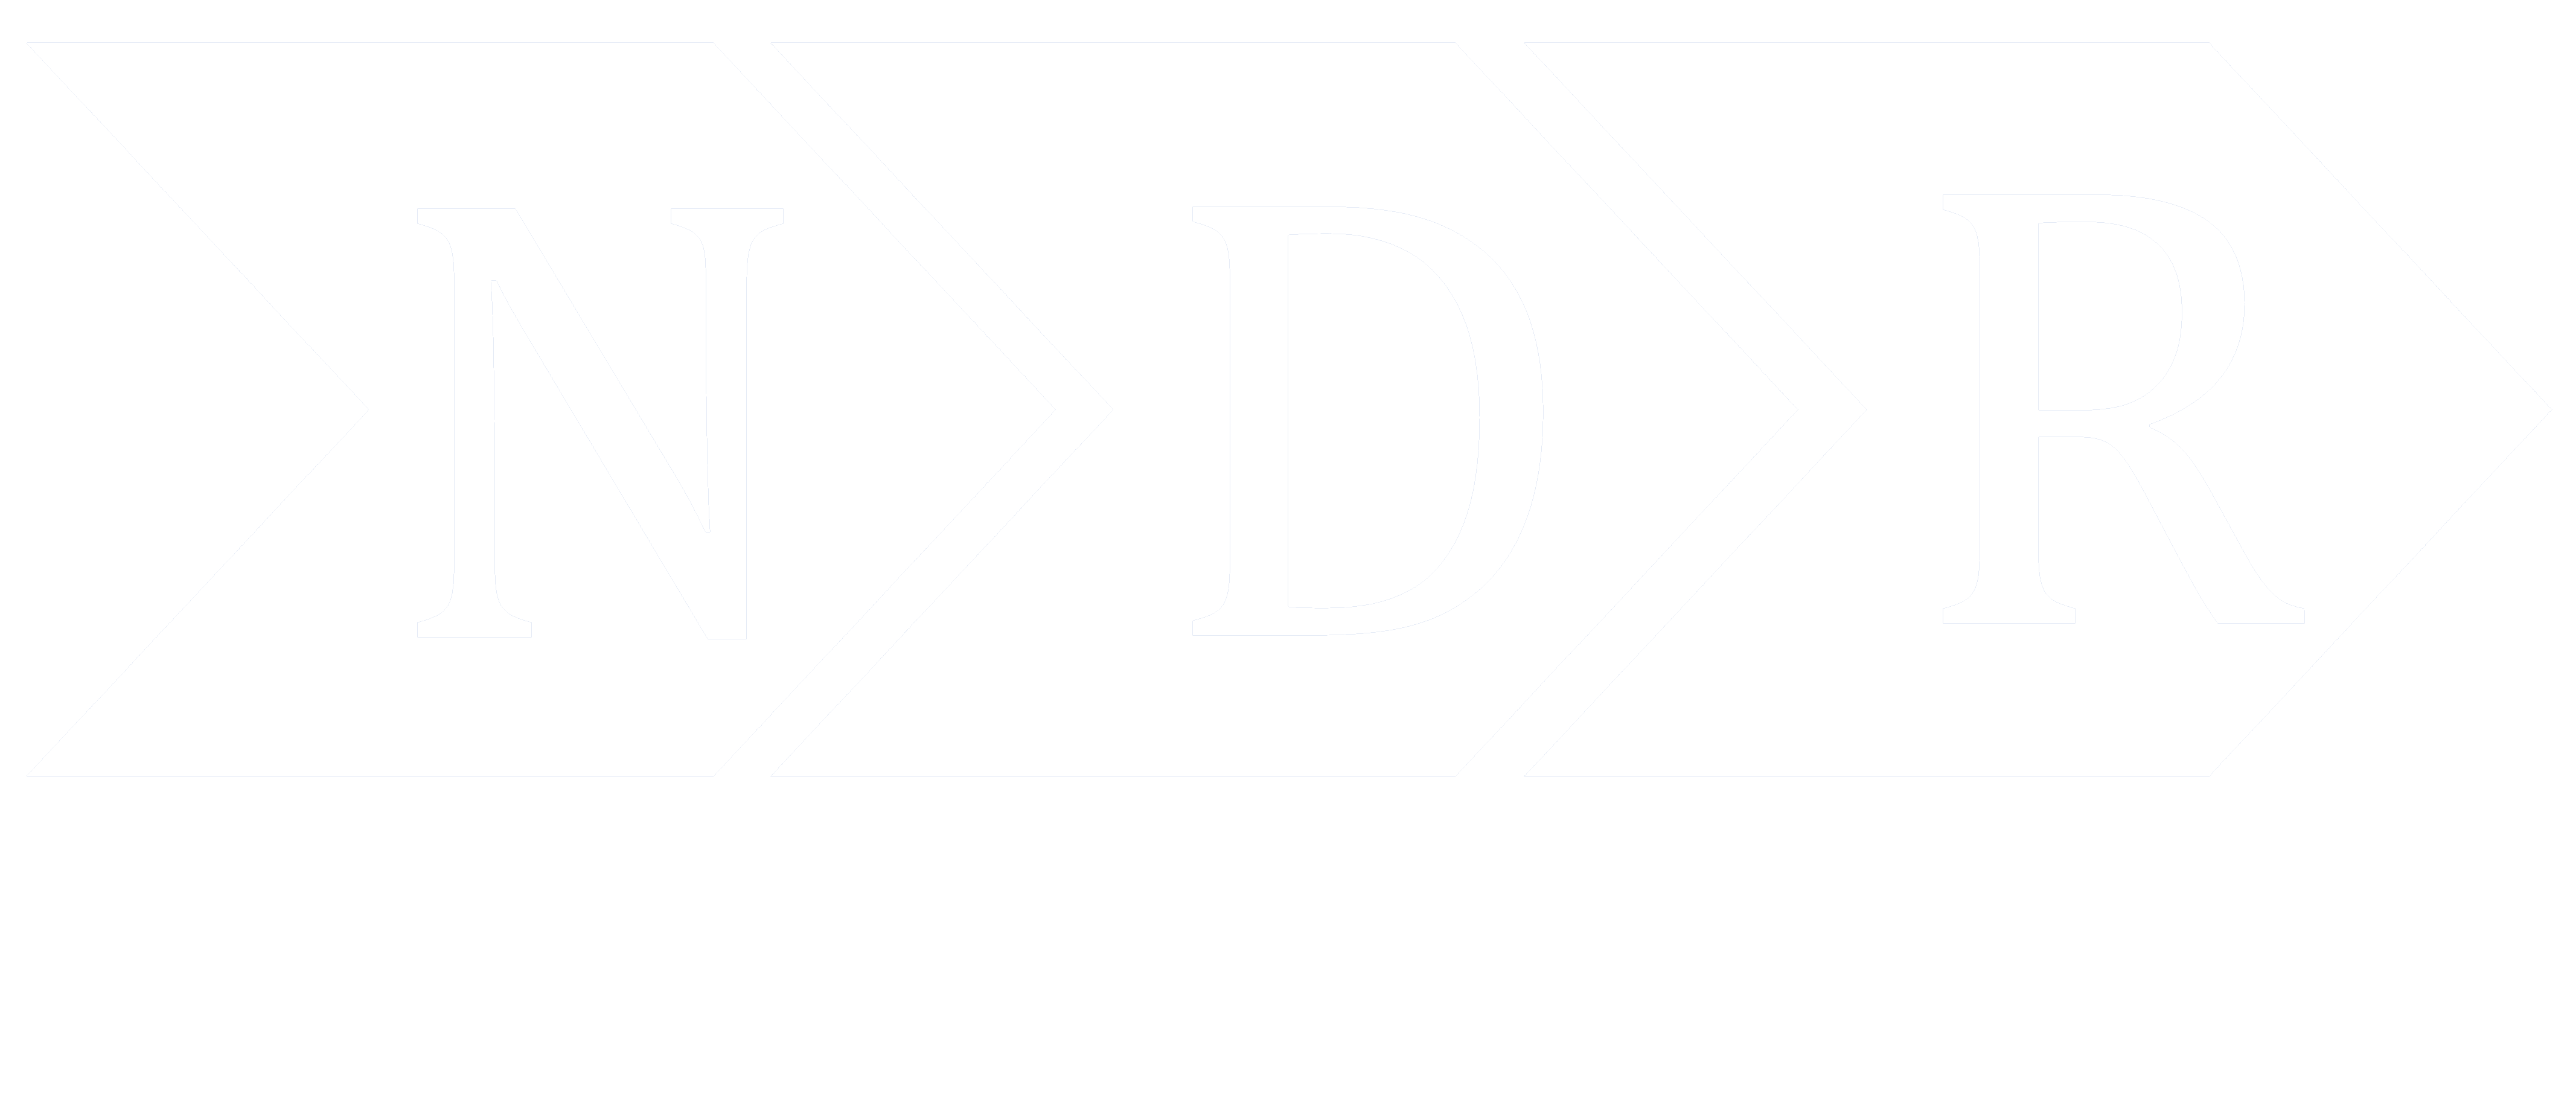 NDR White png